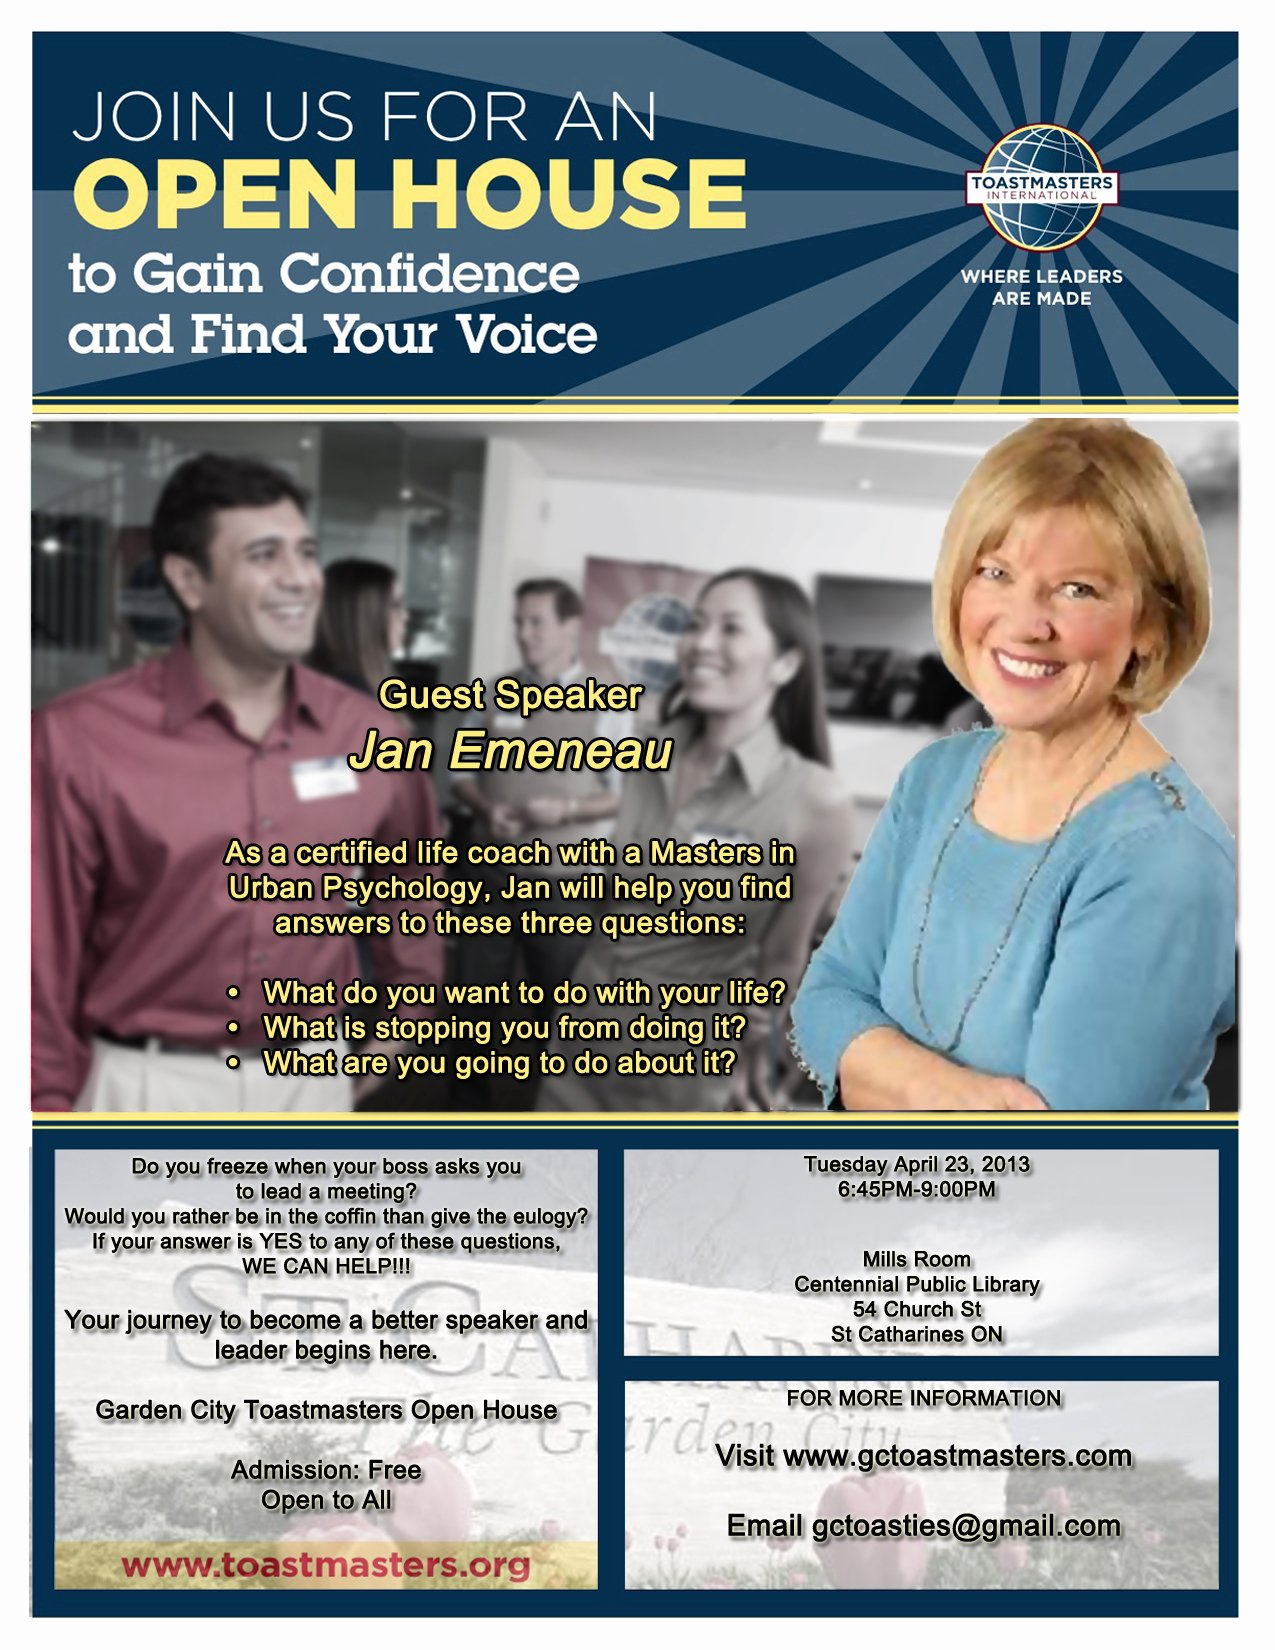 Open House Flyer Template Word Awesome Garden City toastmasters – Open House – Tuesday April 23